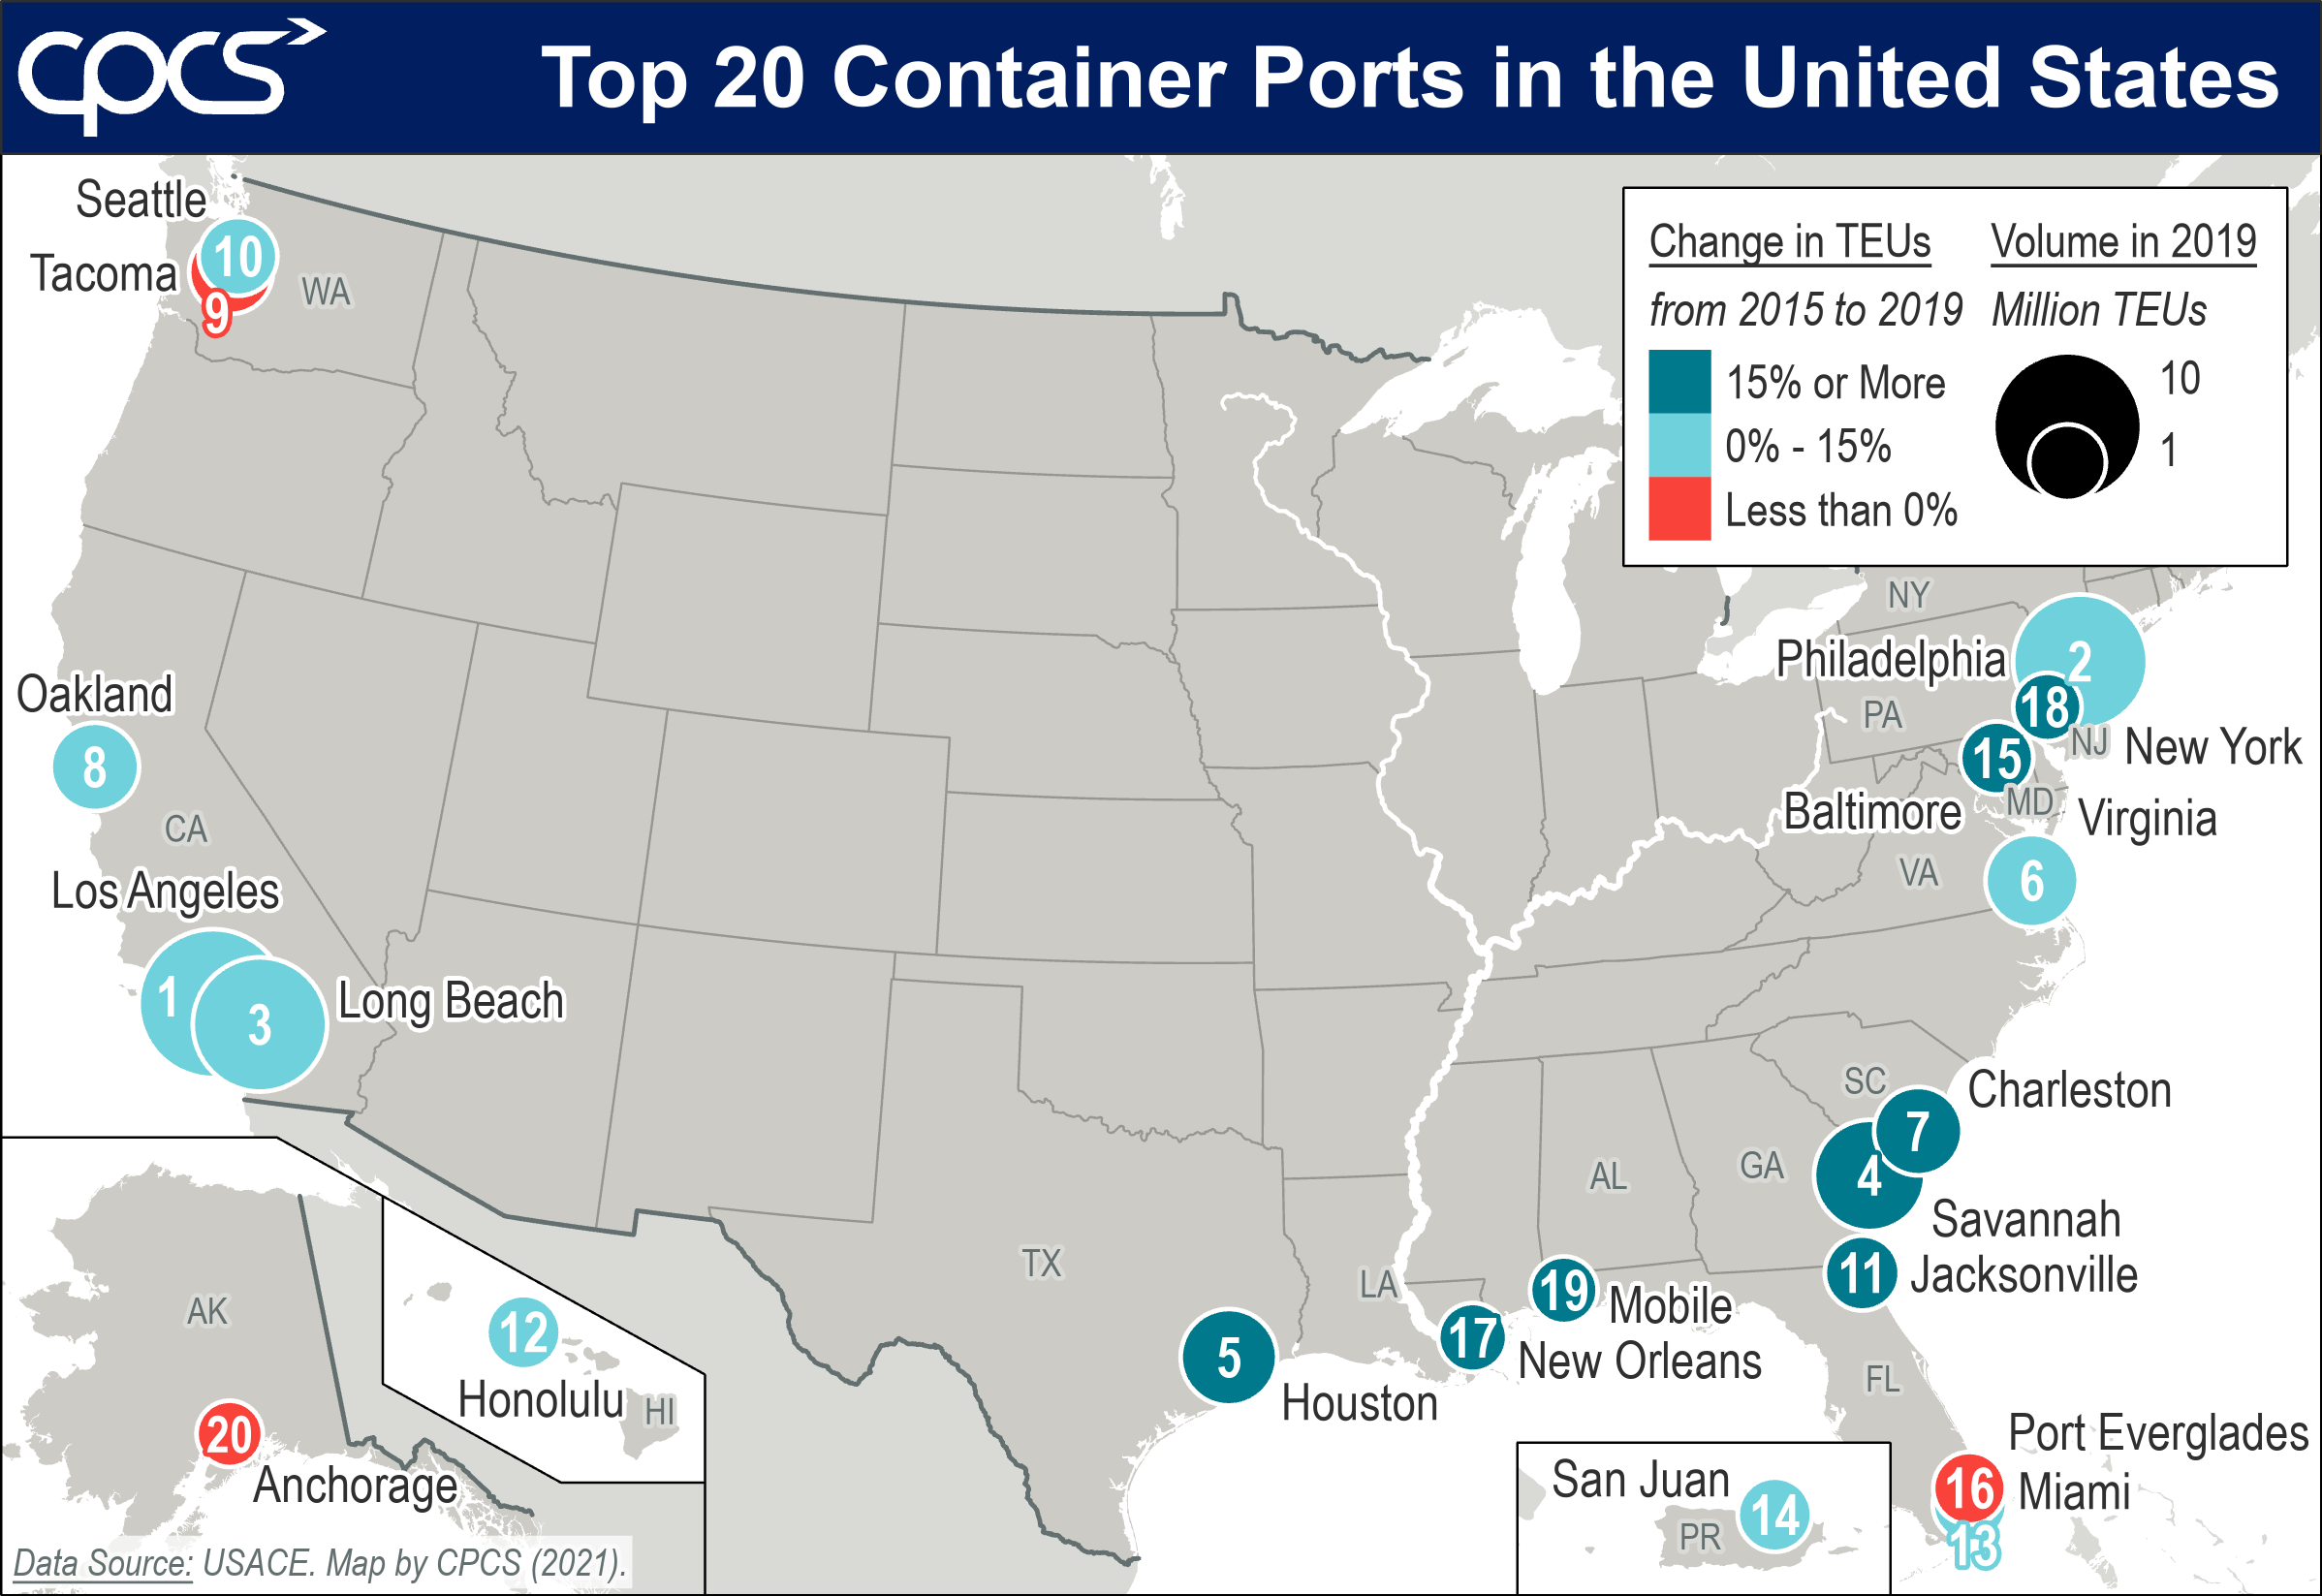 Map of the top 20 container ports in the United States